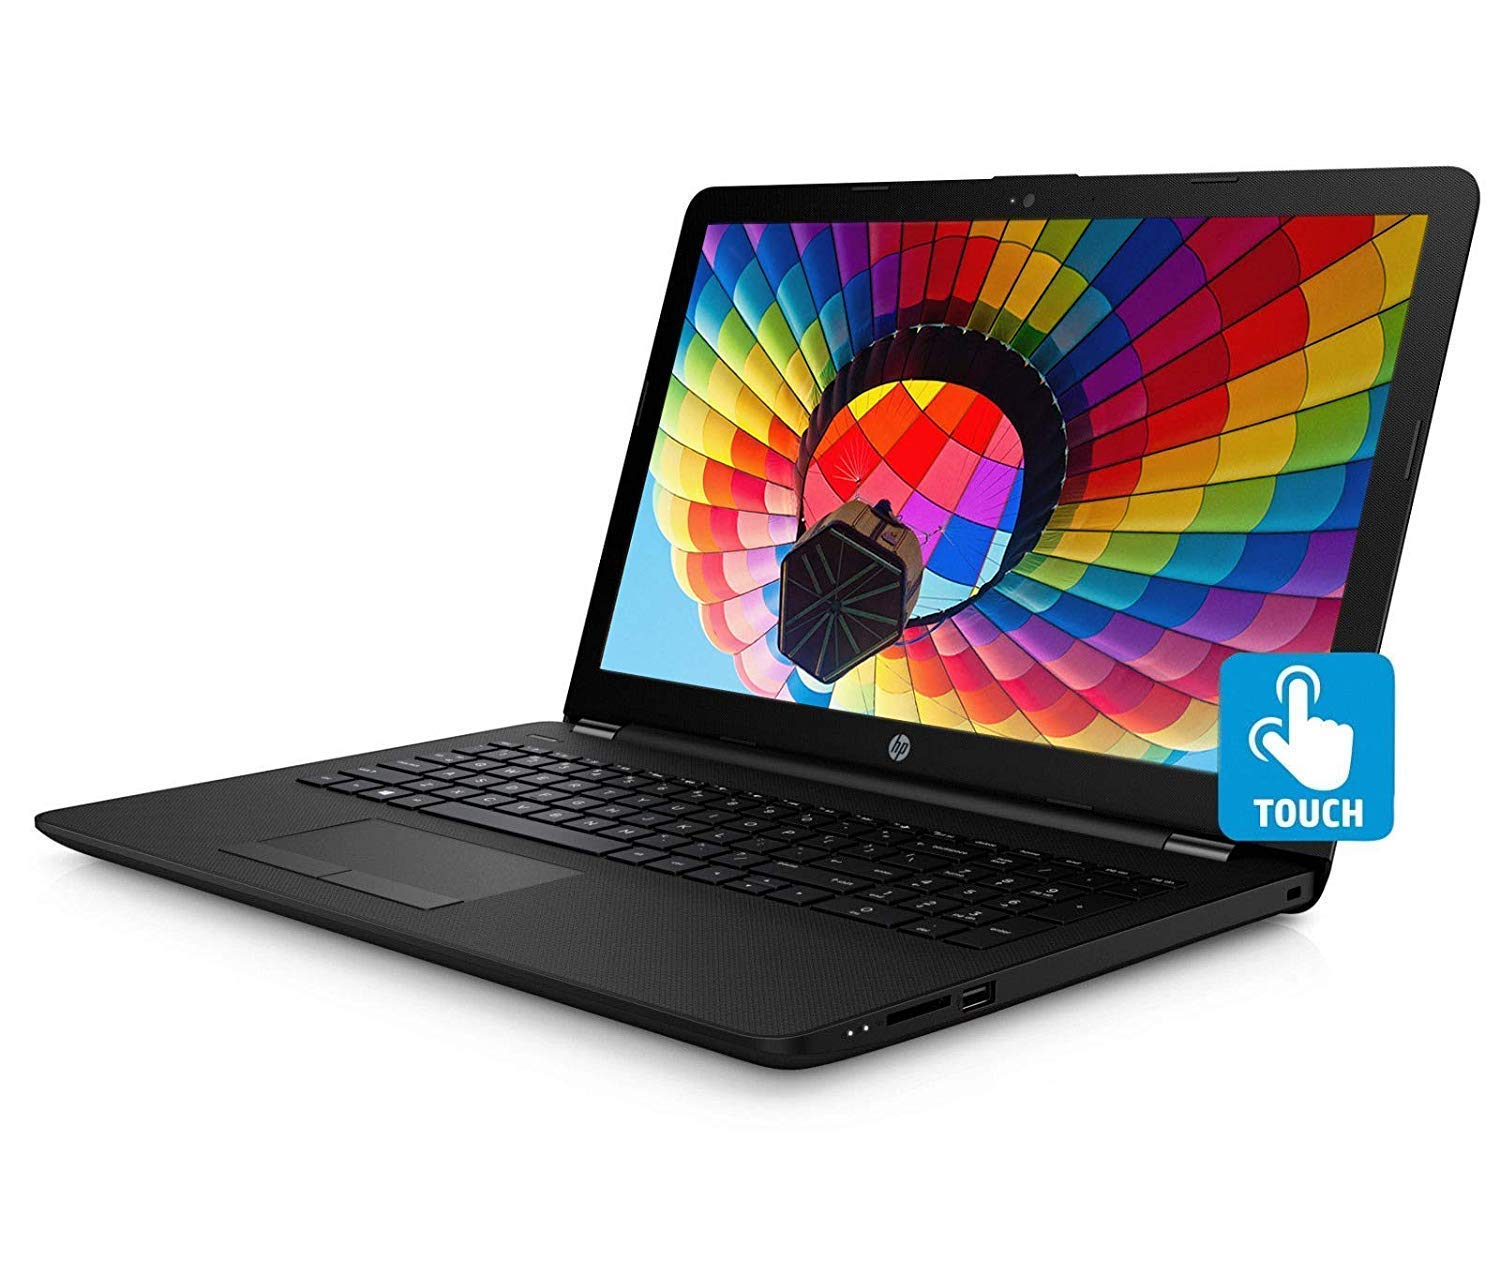 "HP 15.6"" HD 2019 New Touch-Screen Laptop Notebook Computer, Intel Pentium Quad-Core N5000 (up to 2.7 GHz), 8GB DDR4, 1TB HDD, Bluetooth, Wi-Fi, HDMI, Webcam, Win 10"